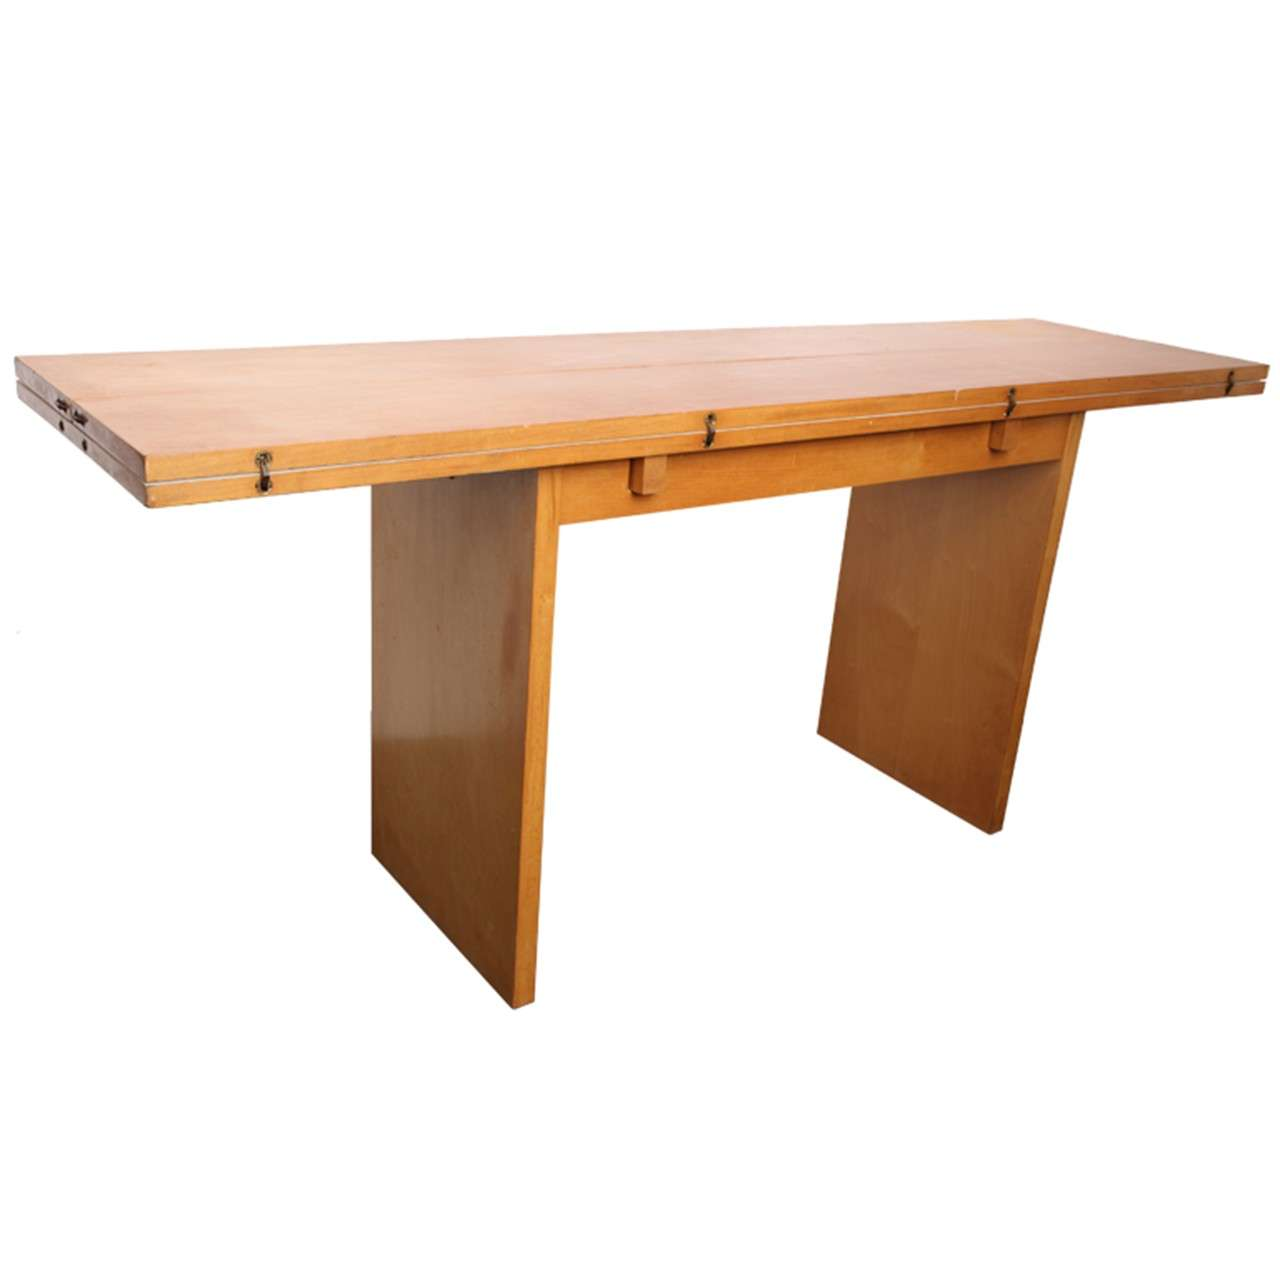 Dining table console converts dining table - Console table converts to dining table ...